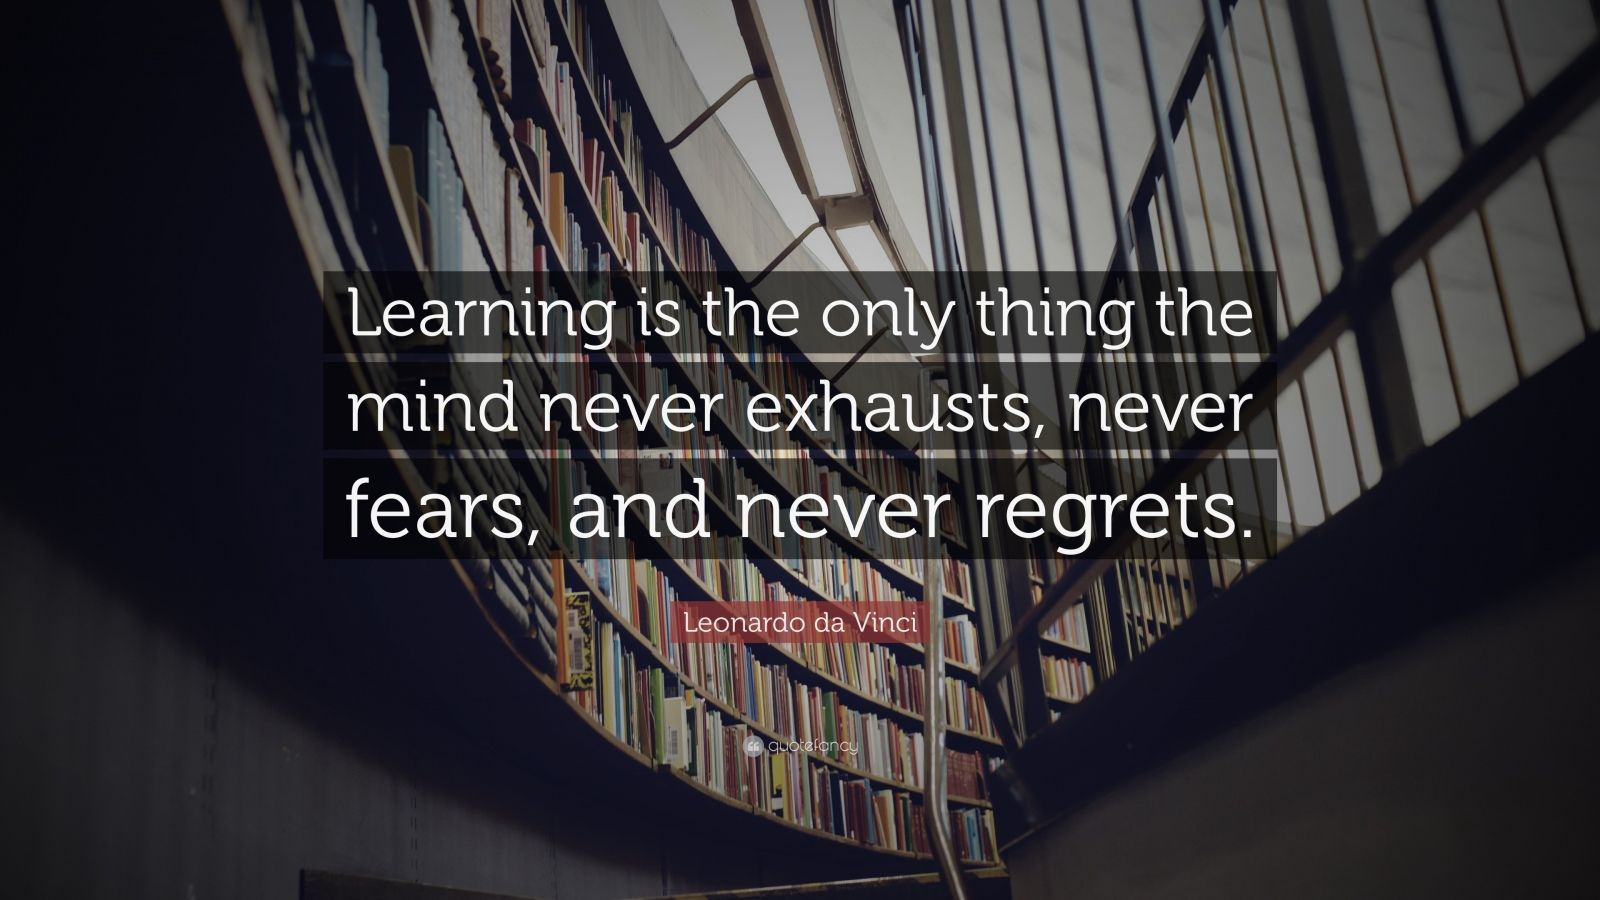 """Leonardo da Vinci Quote: """"Learning is the only thing the mind never exhausts, never fears, and never regrets."""""""